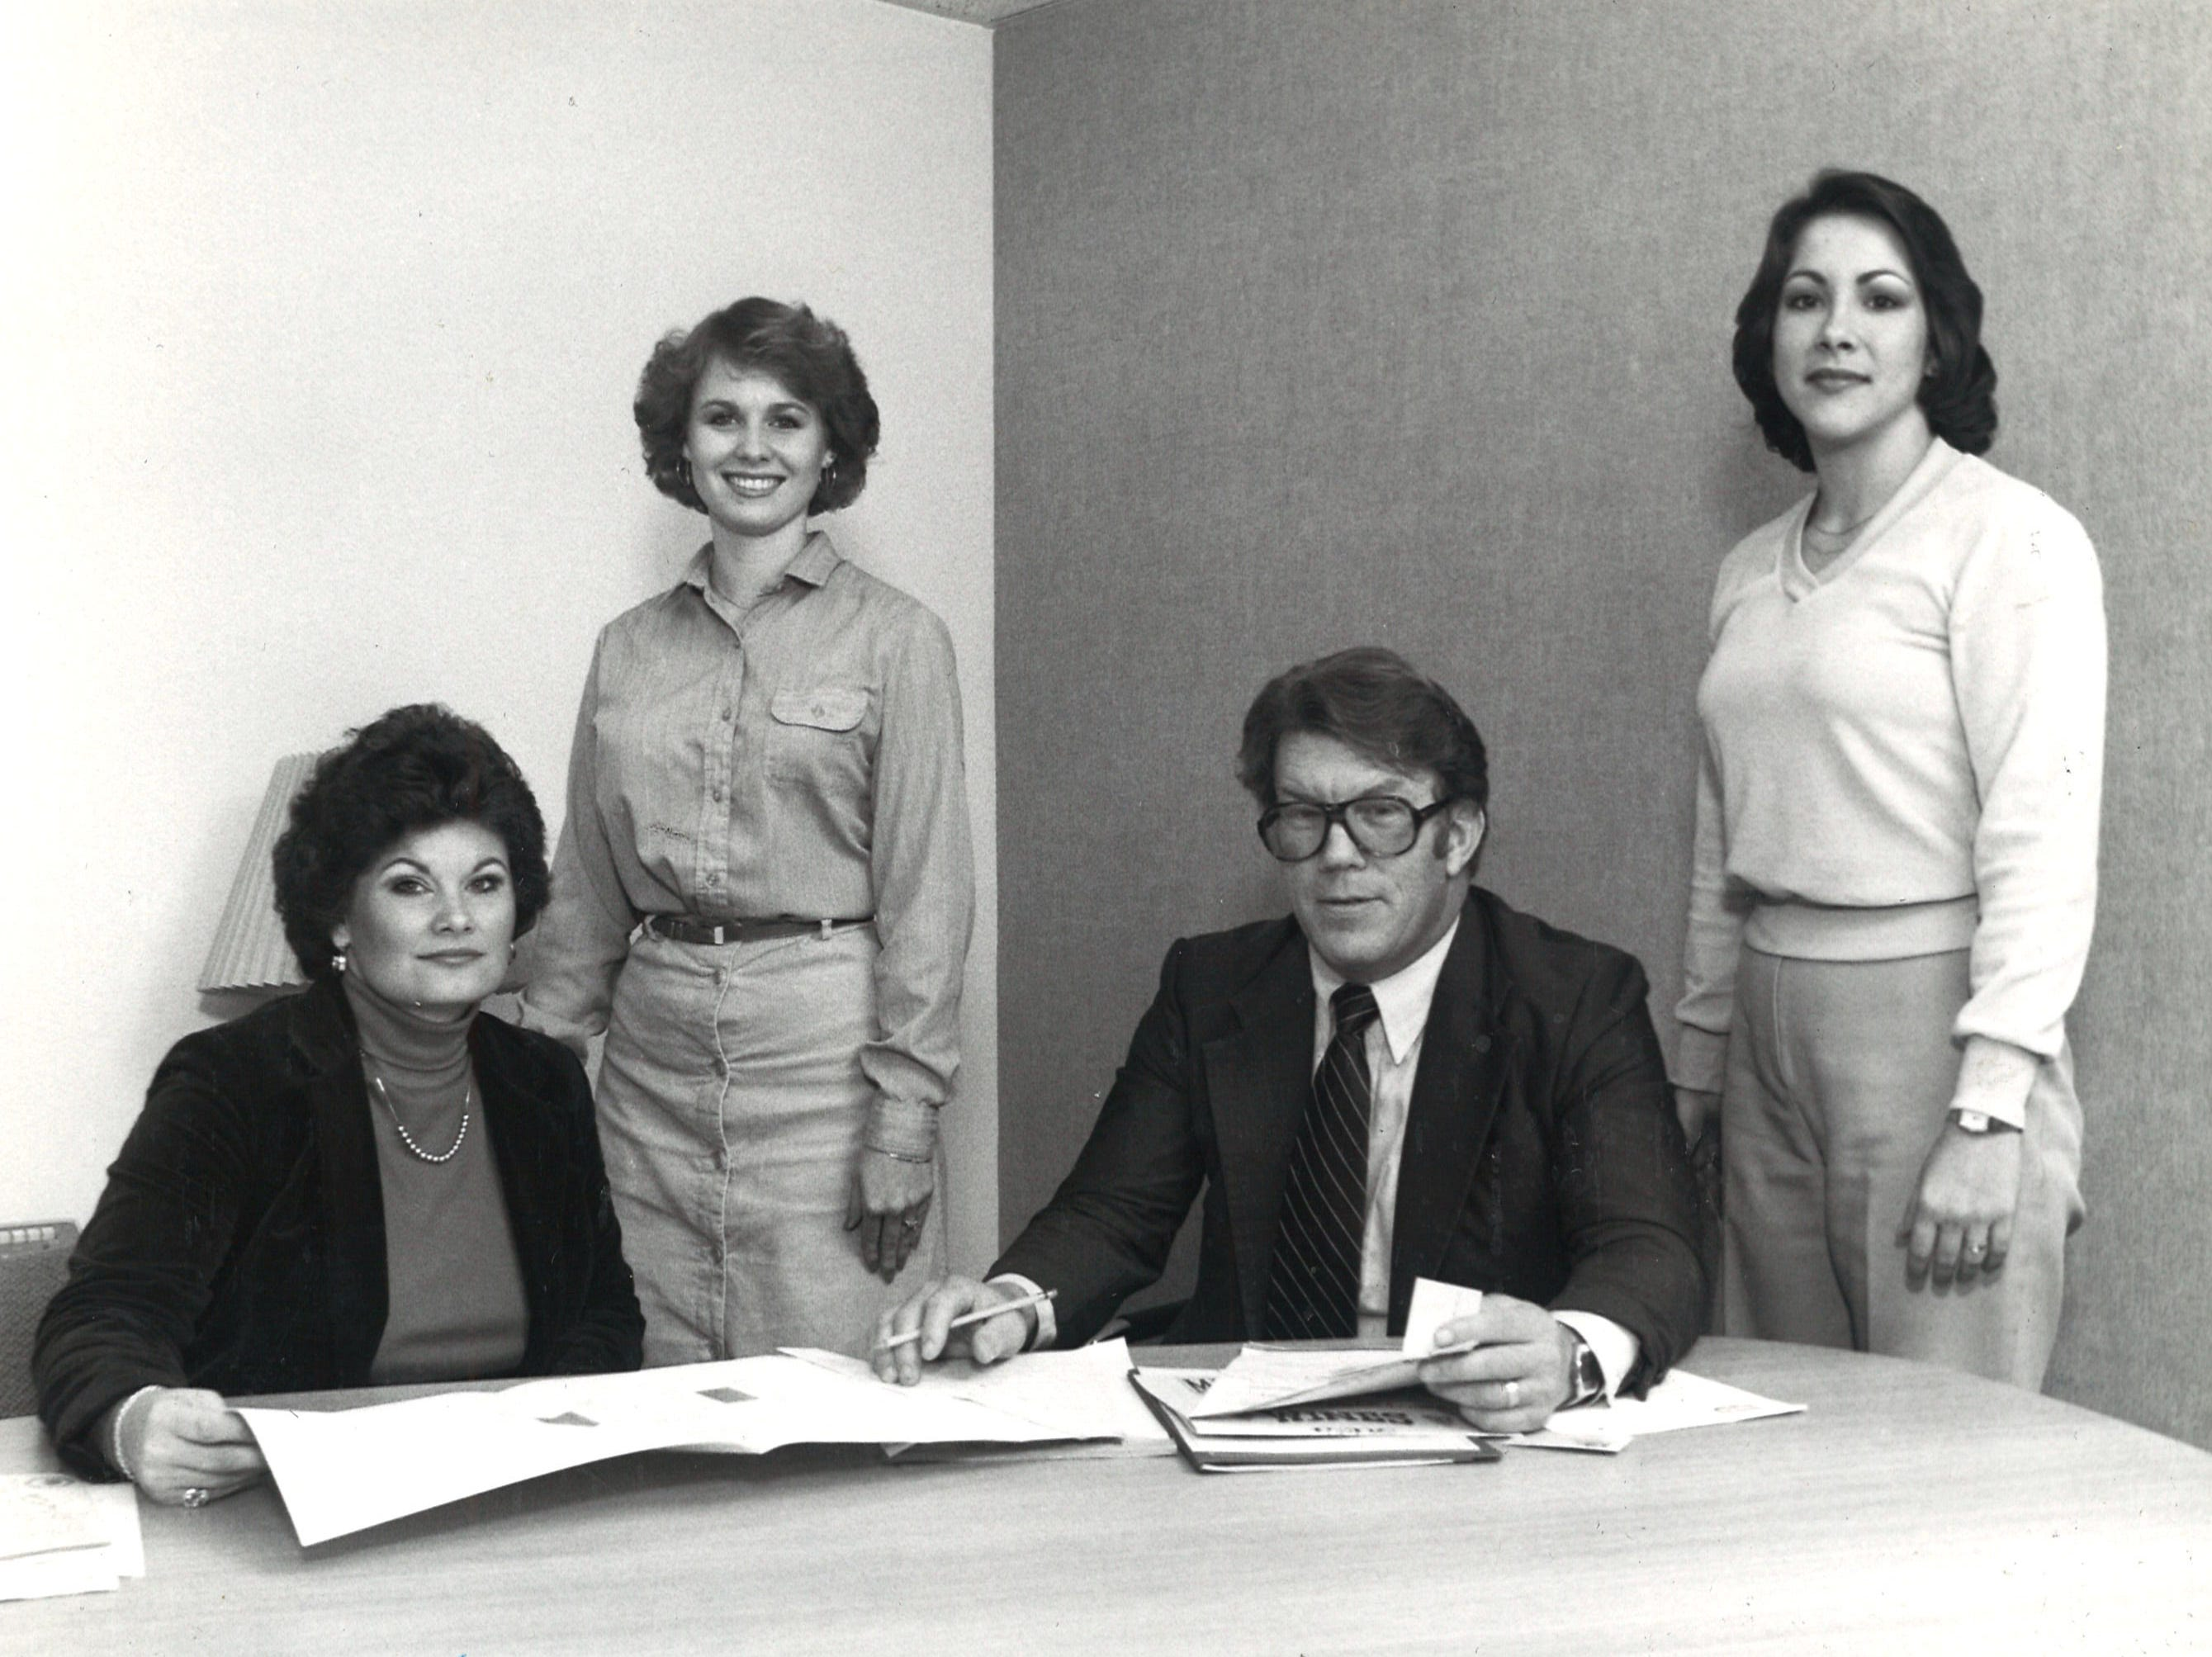 Sunrise Mall management staff in January 1981 (left to right): Nancy Wilshusen, marketing director; Delaine Graham, secretary; Norm Morris, general manager; and Dawna Perney, office manager.